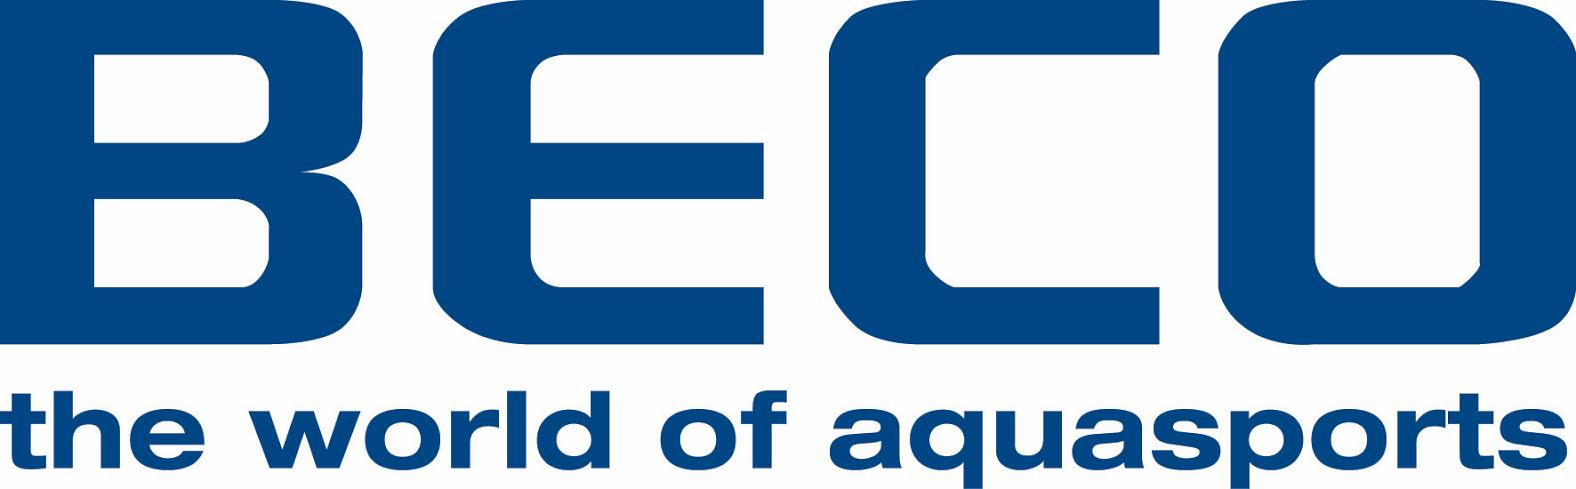 BECO the world of aqua sport